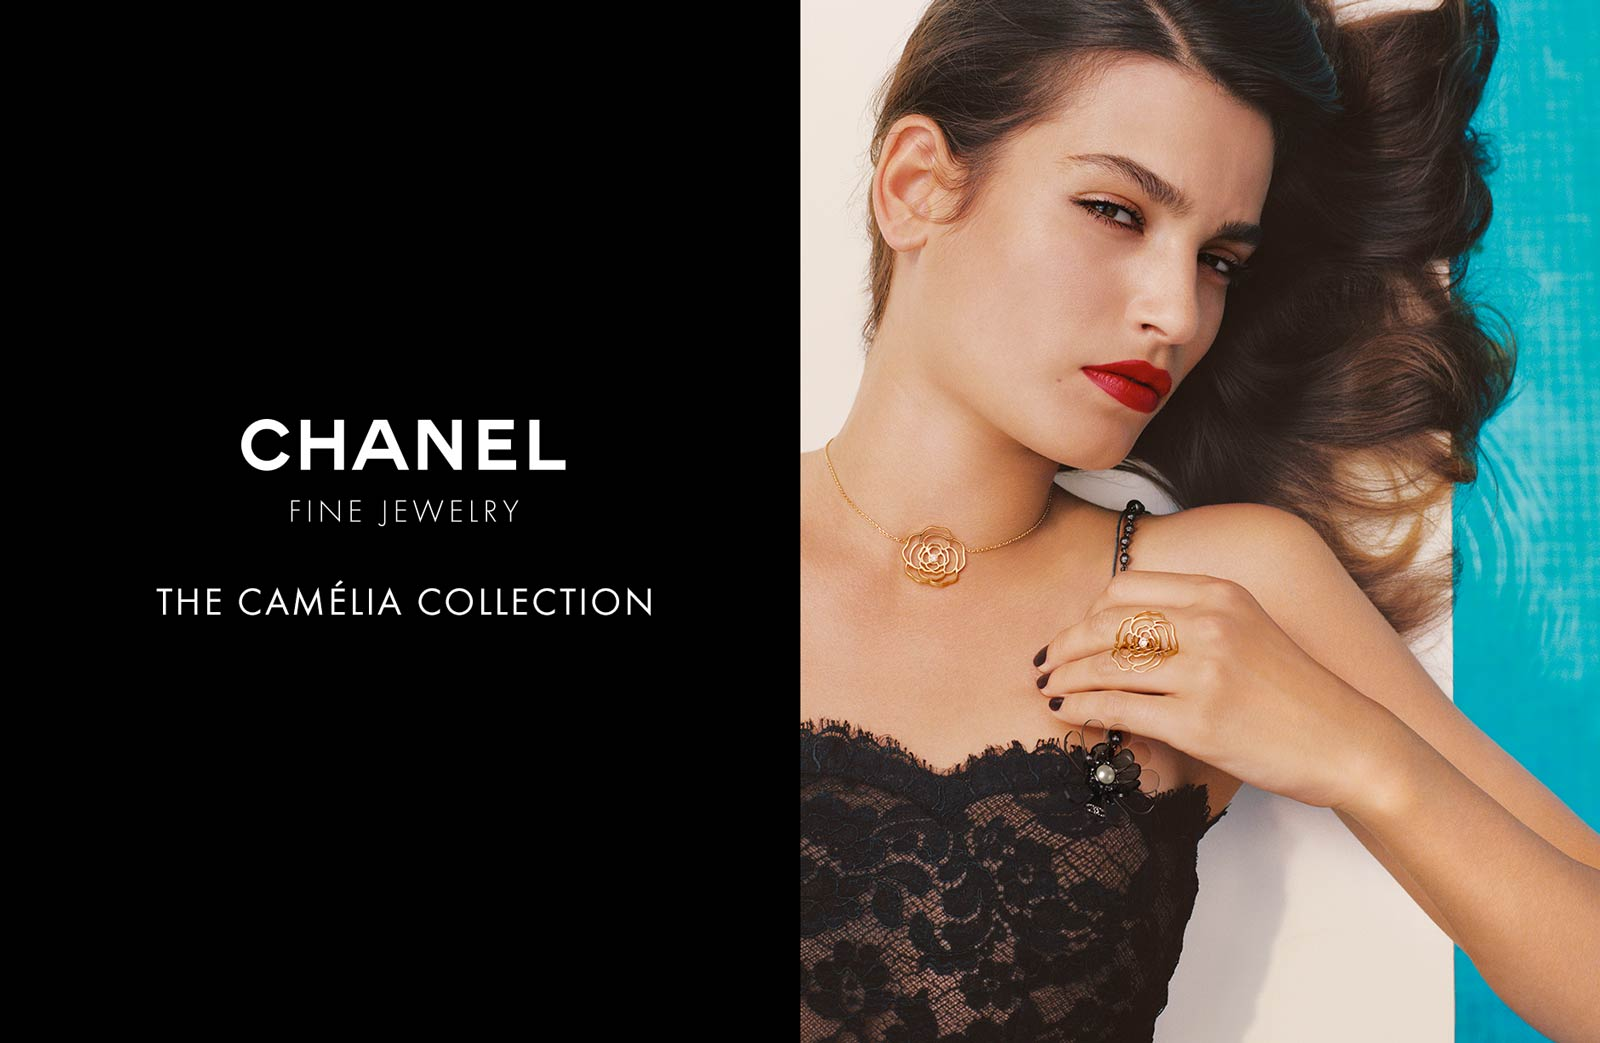 Chanel: Fine Jewelry - The Camelia Collection